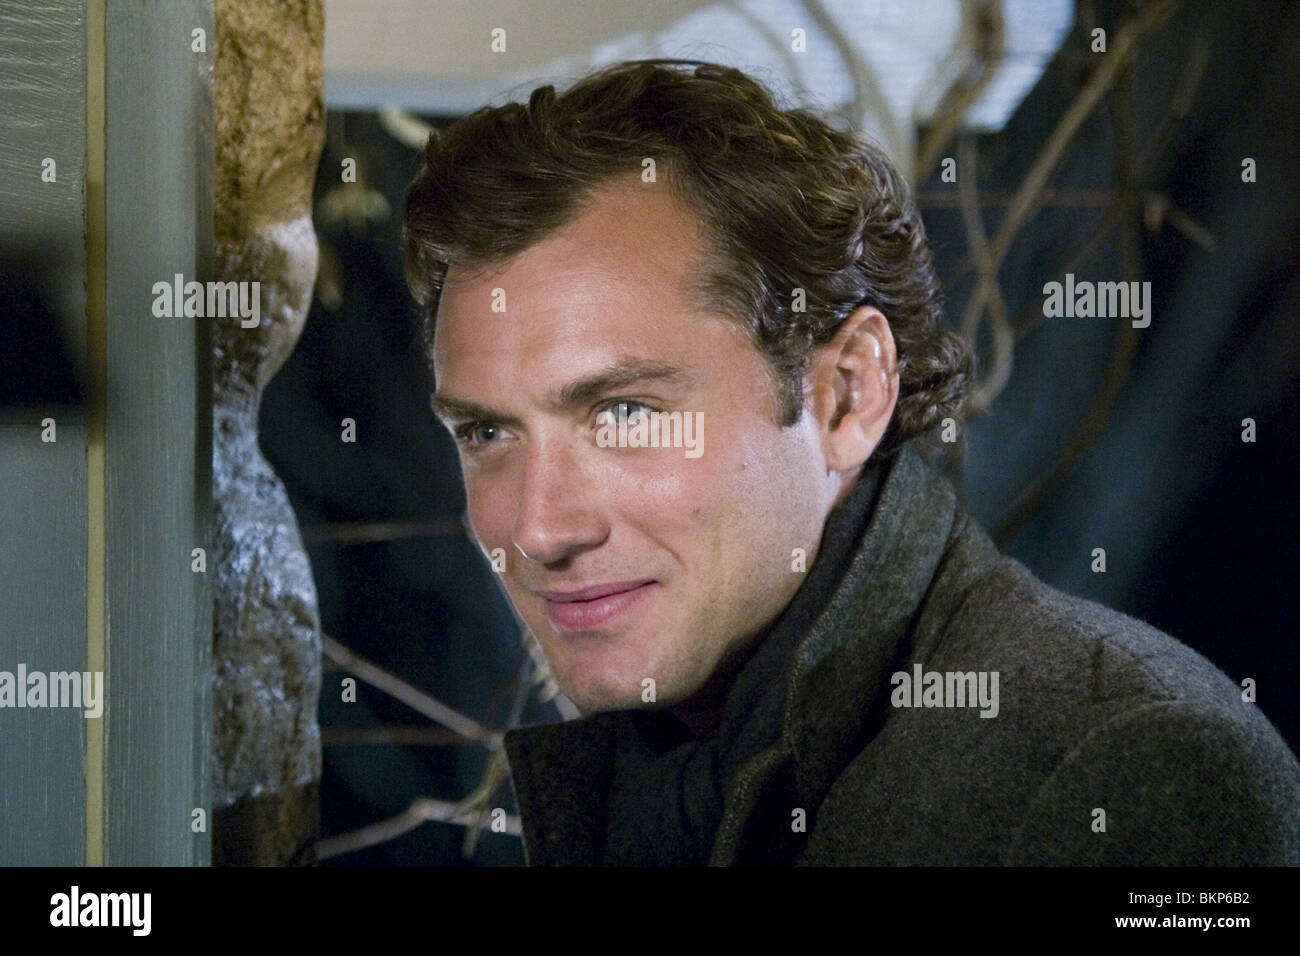 The Holiday 2006 Jude Law Stock Photo Alamy